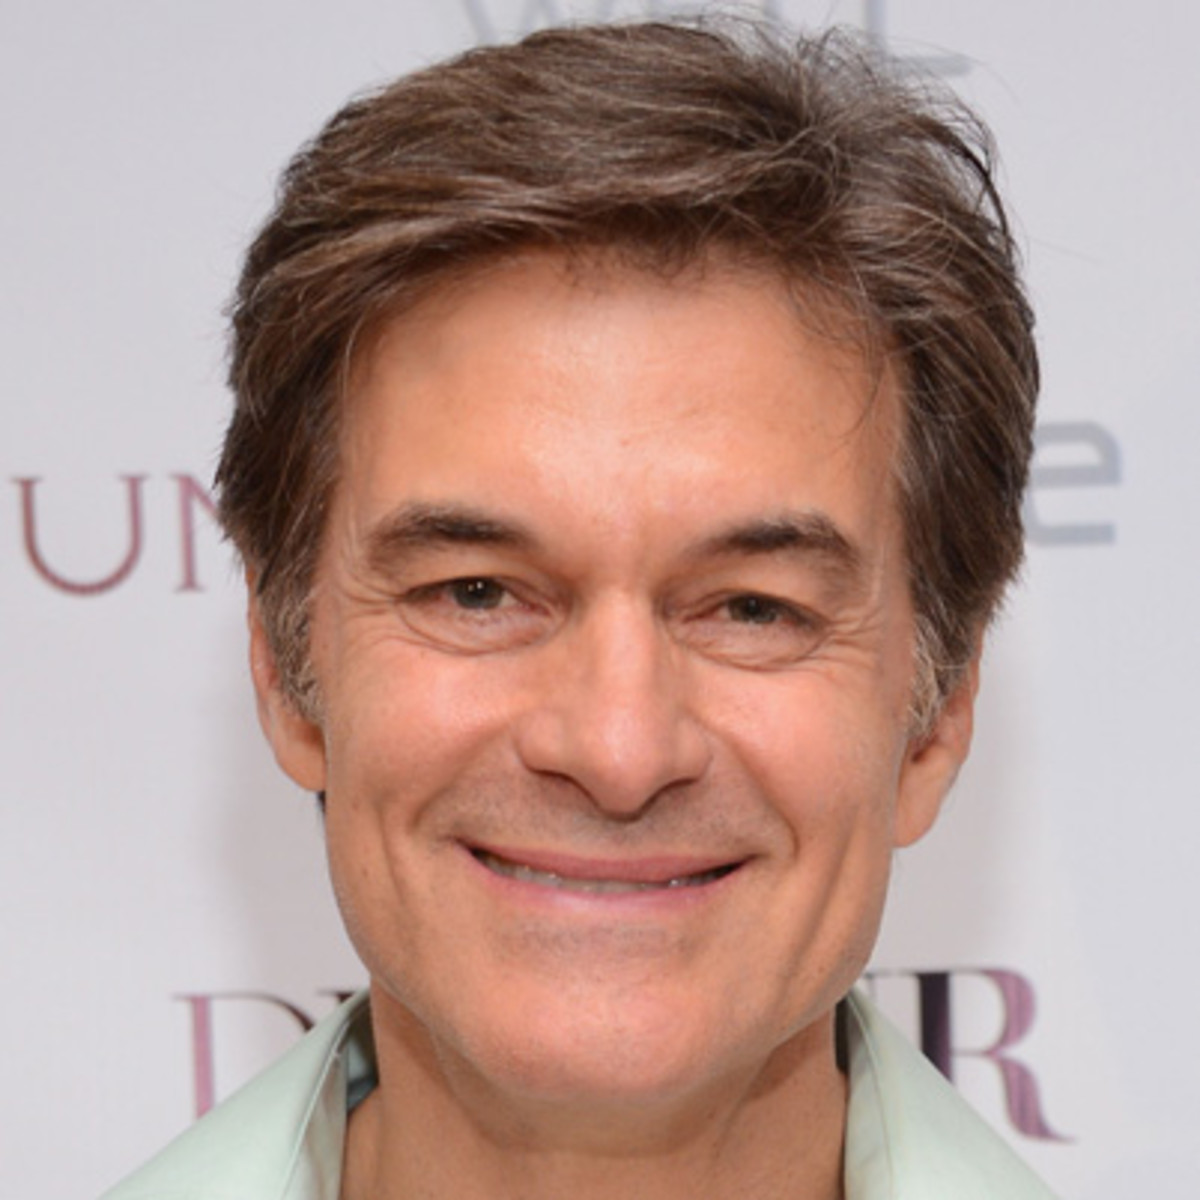 NEW YORK, NY - JULY 18:  Mehmet Oz attends The Chopra Well Launch Event at Espace on July 18, 2012 in New York City.  (Photo by Jason Kempin/Getty Images)